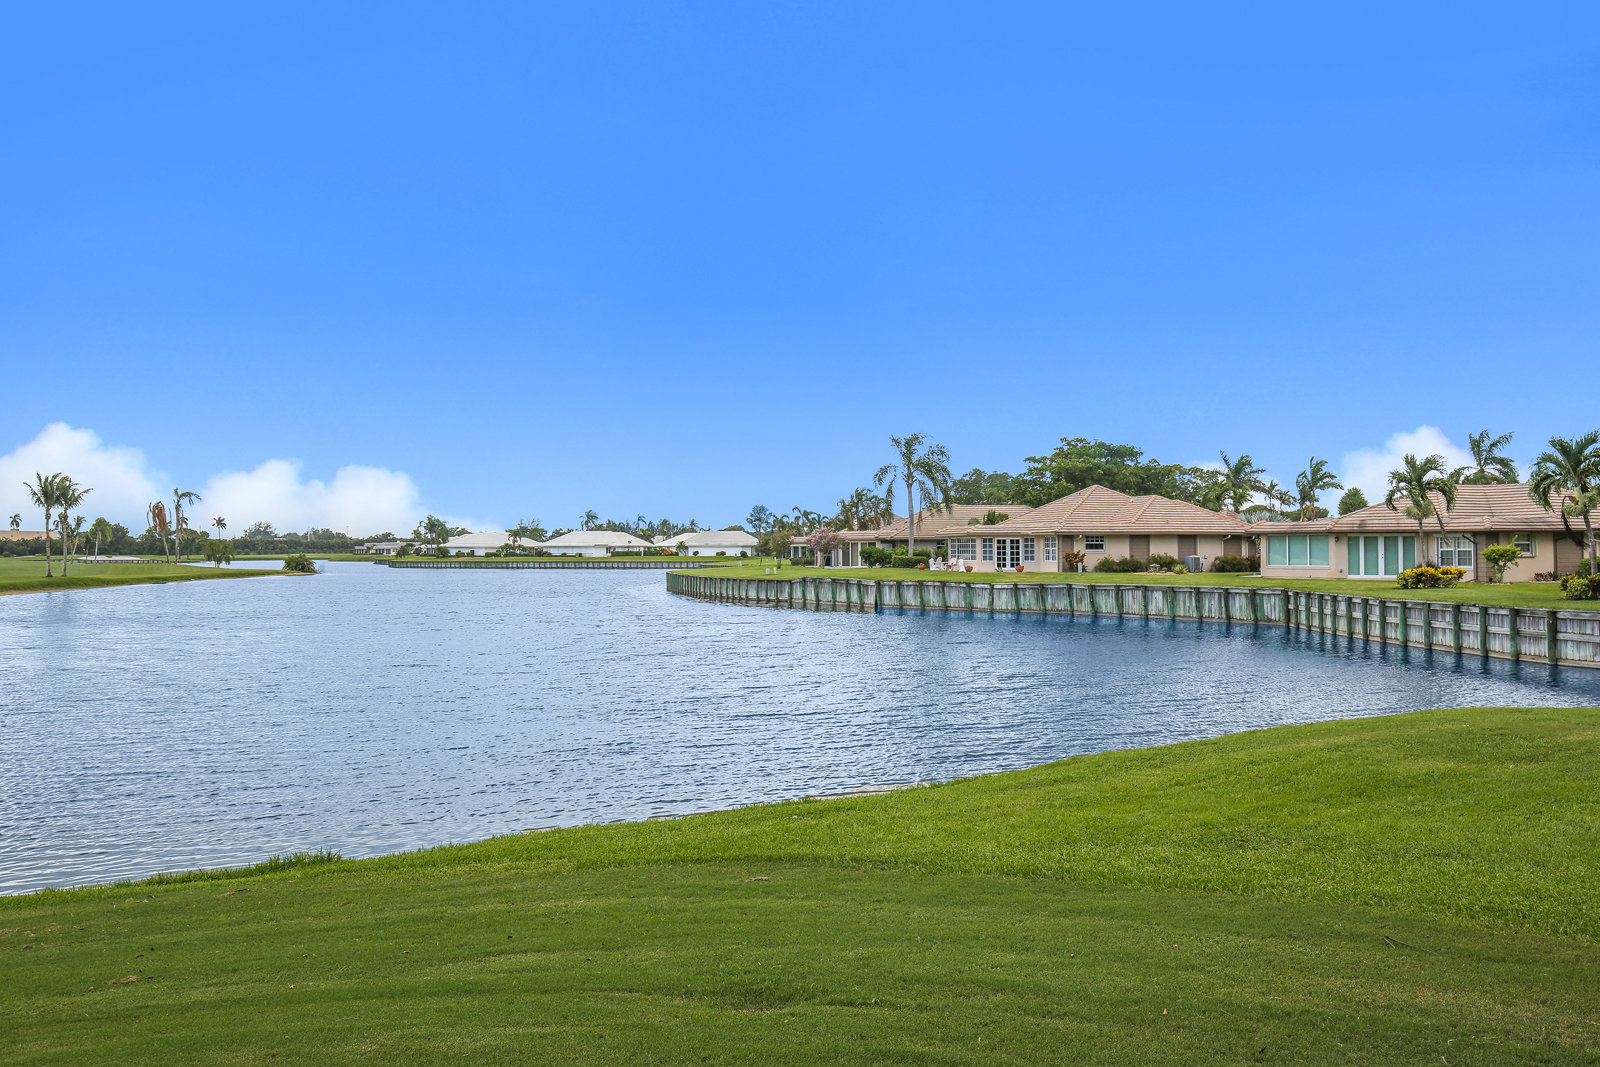 Atlantis in Boca Raton Homes for Sale